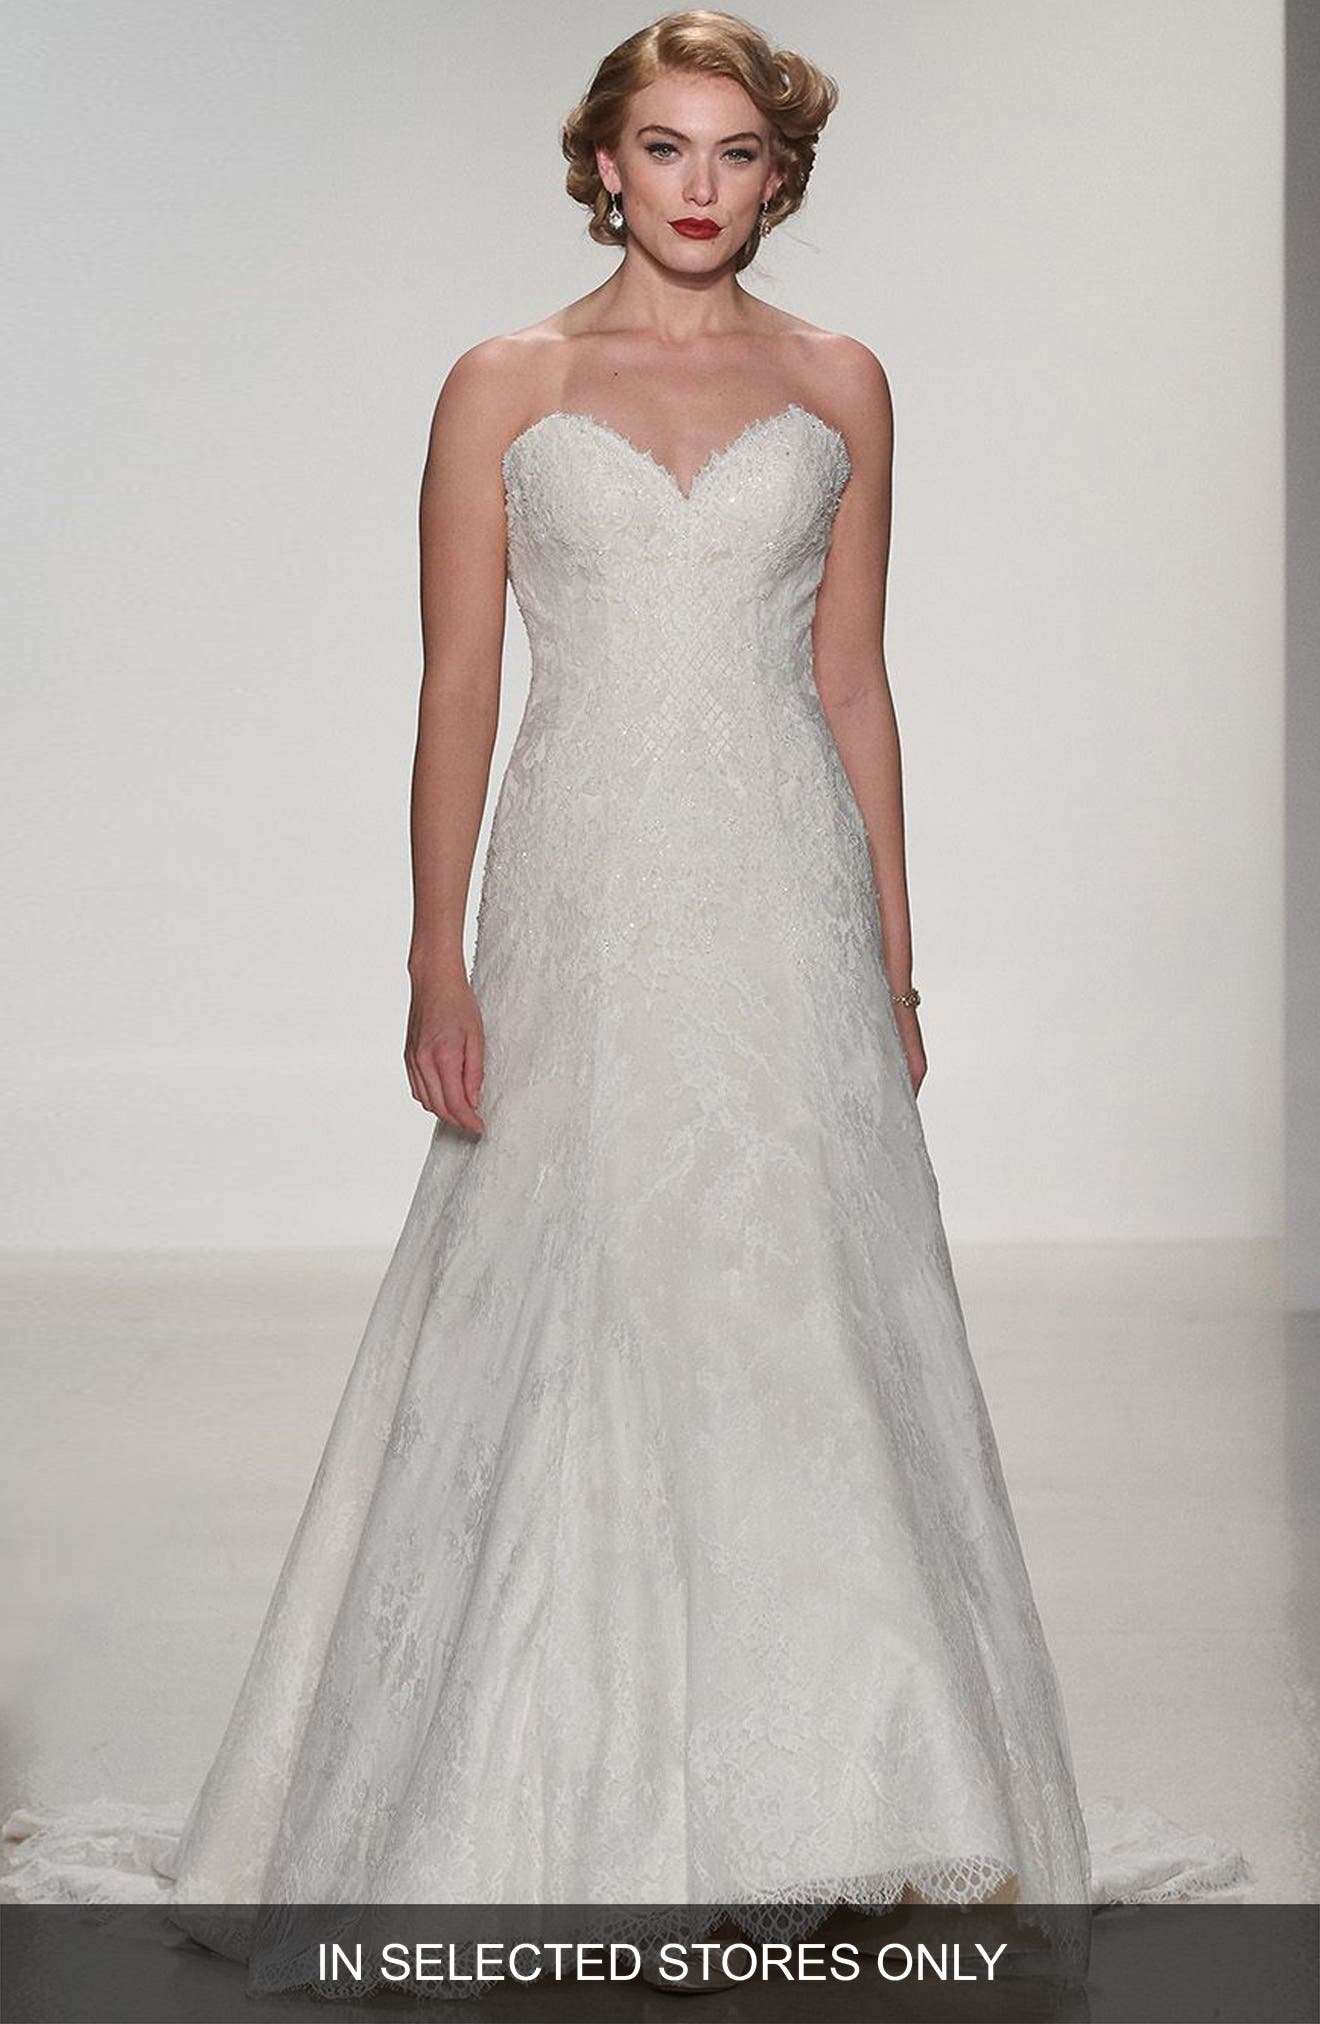 Alternate Image 1 Selected - Matthew Christopher Adaline Strapless Lace A-Line Gown